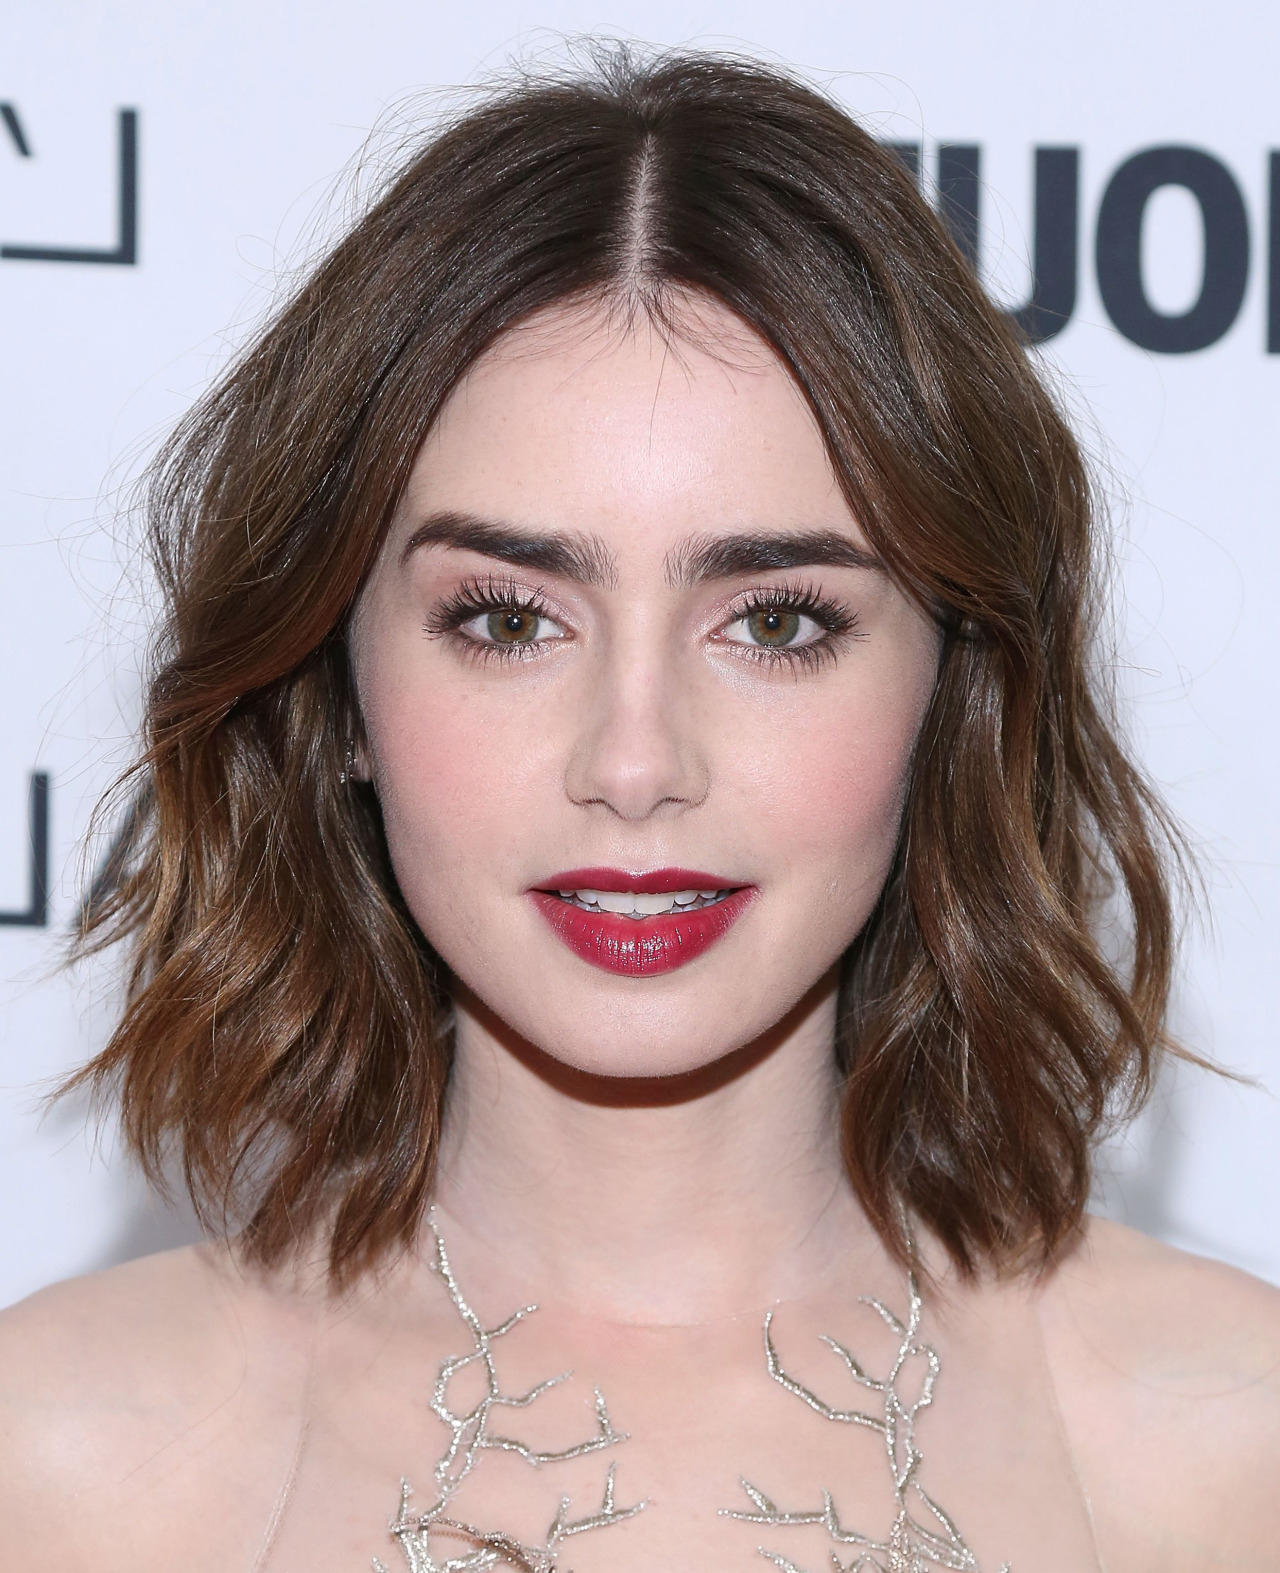 15 Of The Best Hairstyles For Medium Length Wavy Hair – The Skincare Throughout Side Parted Messy Bob Hairstyles For Wavy Hair (View 3 of 20)